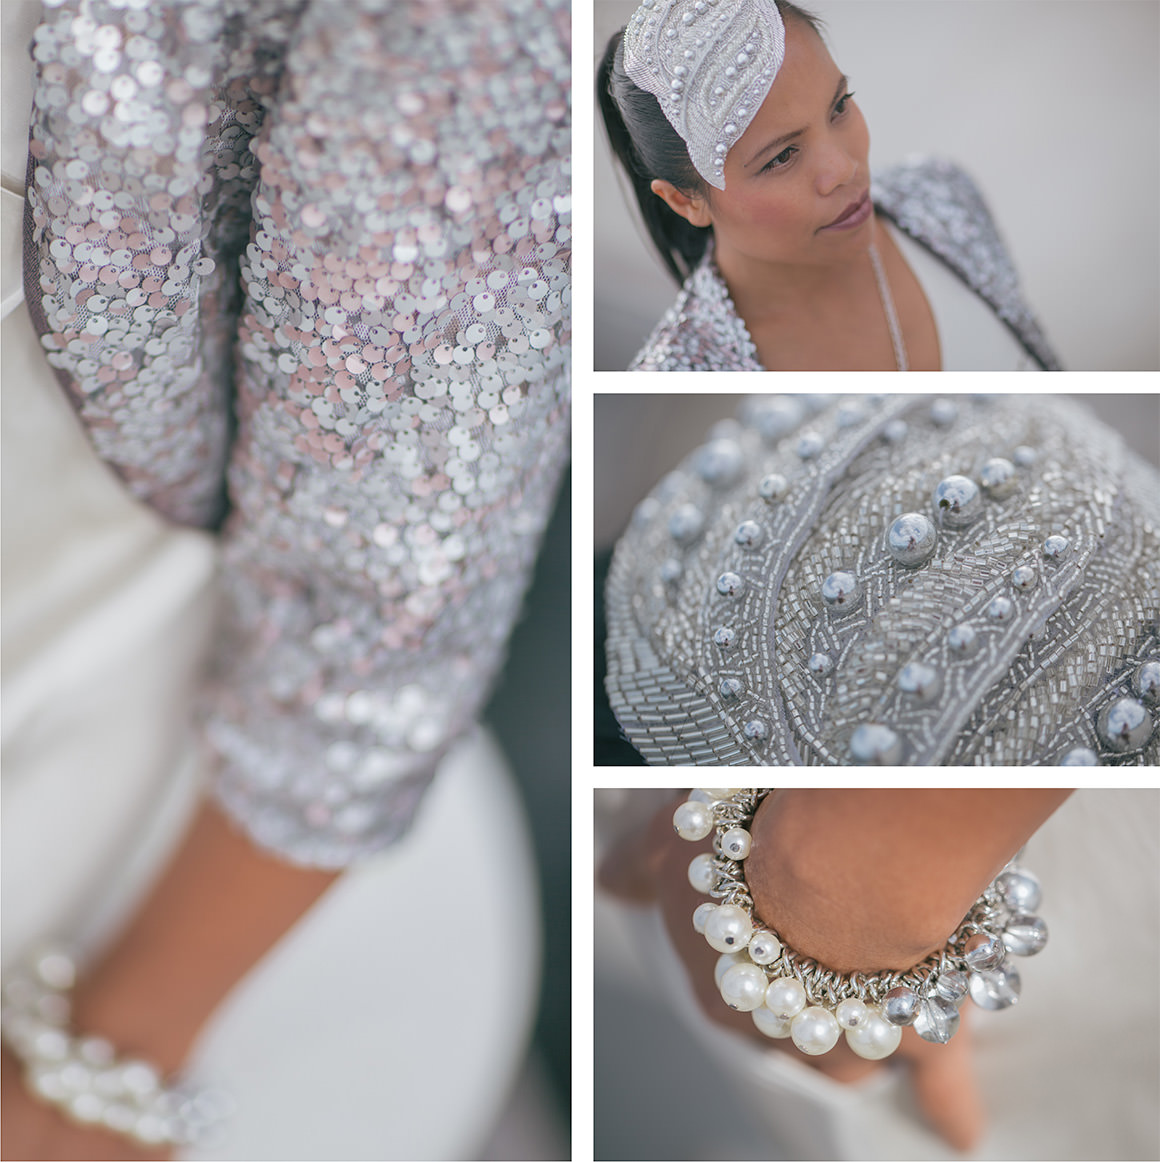 fashion trends 2014 - silver